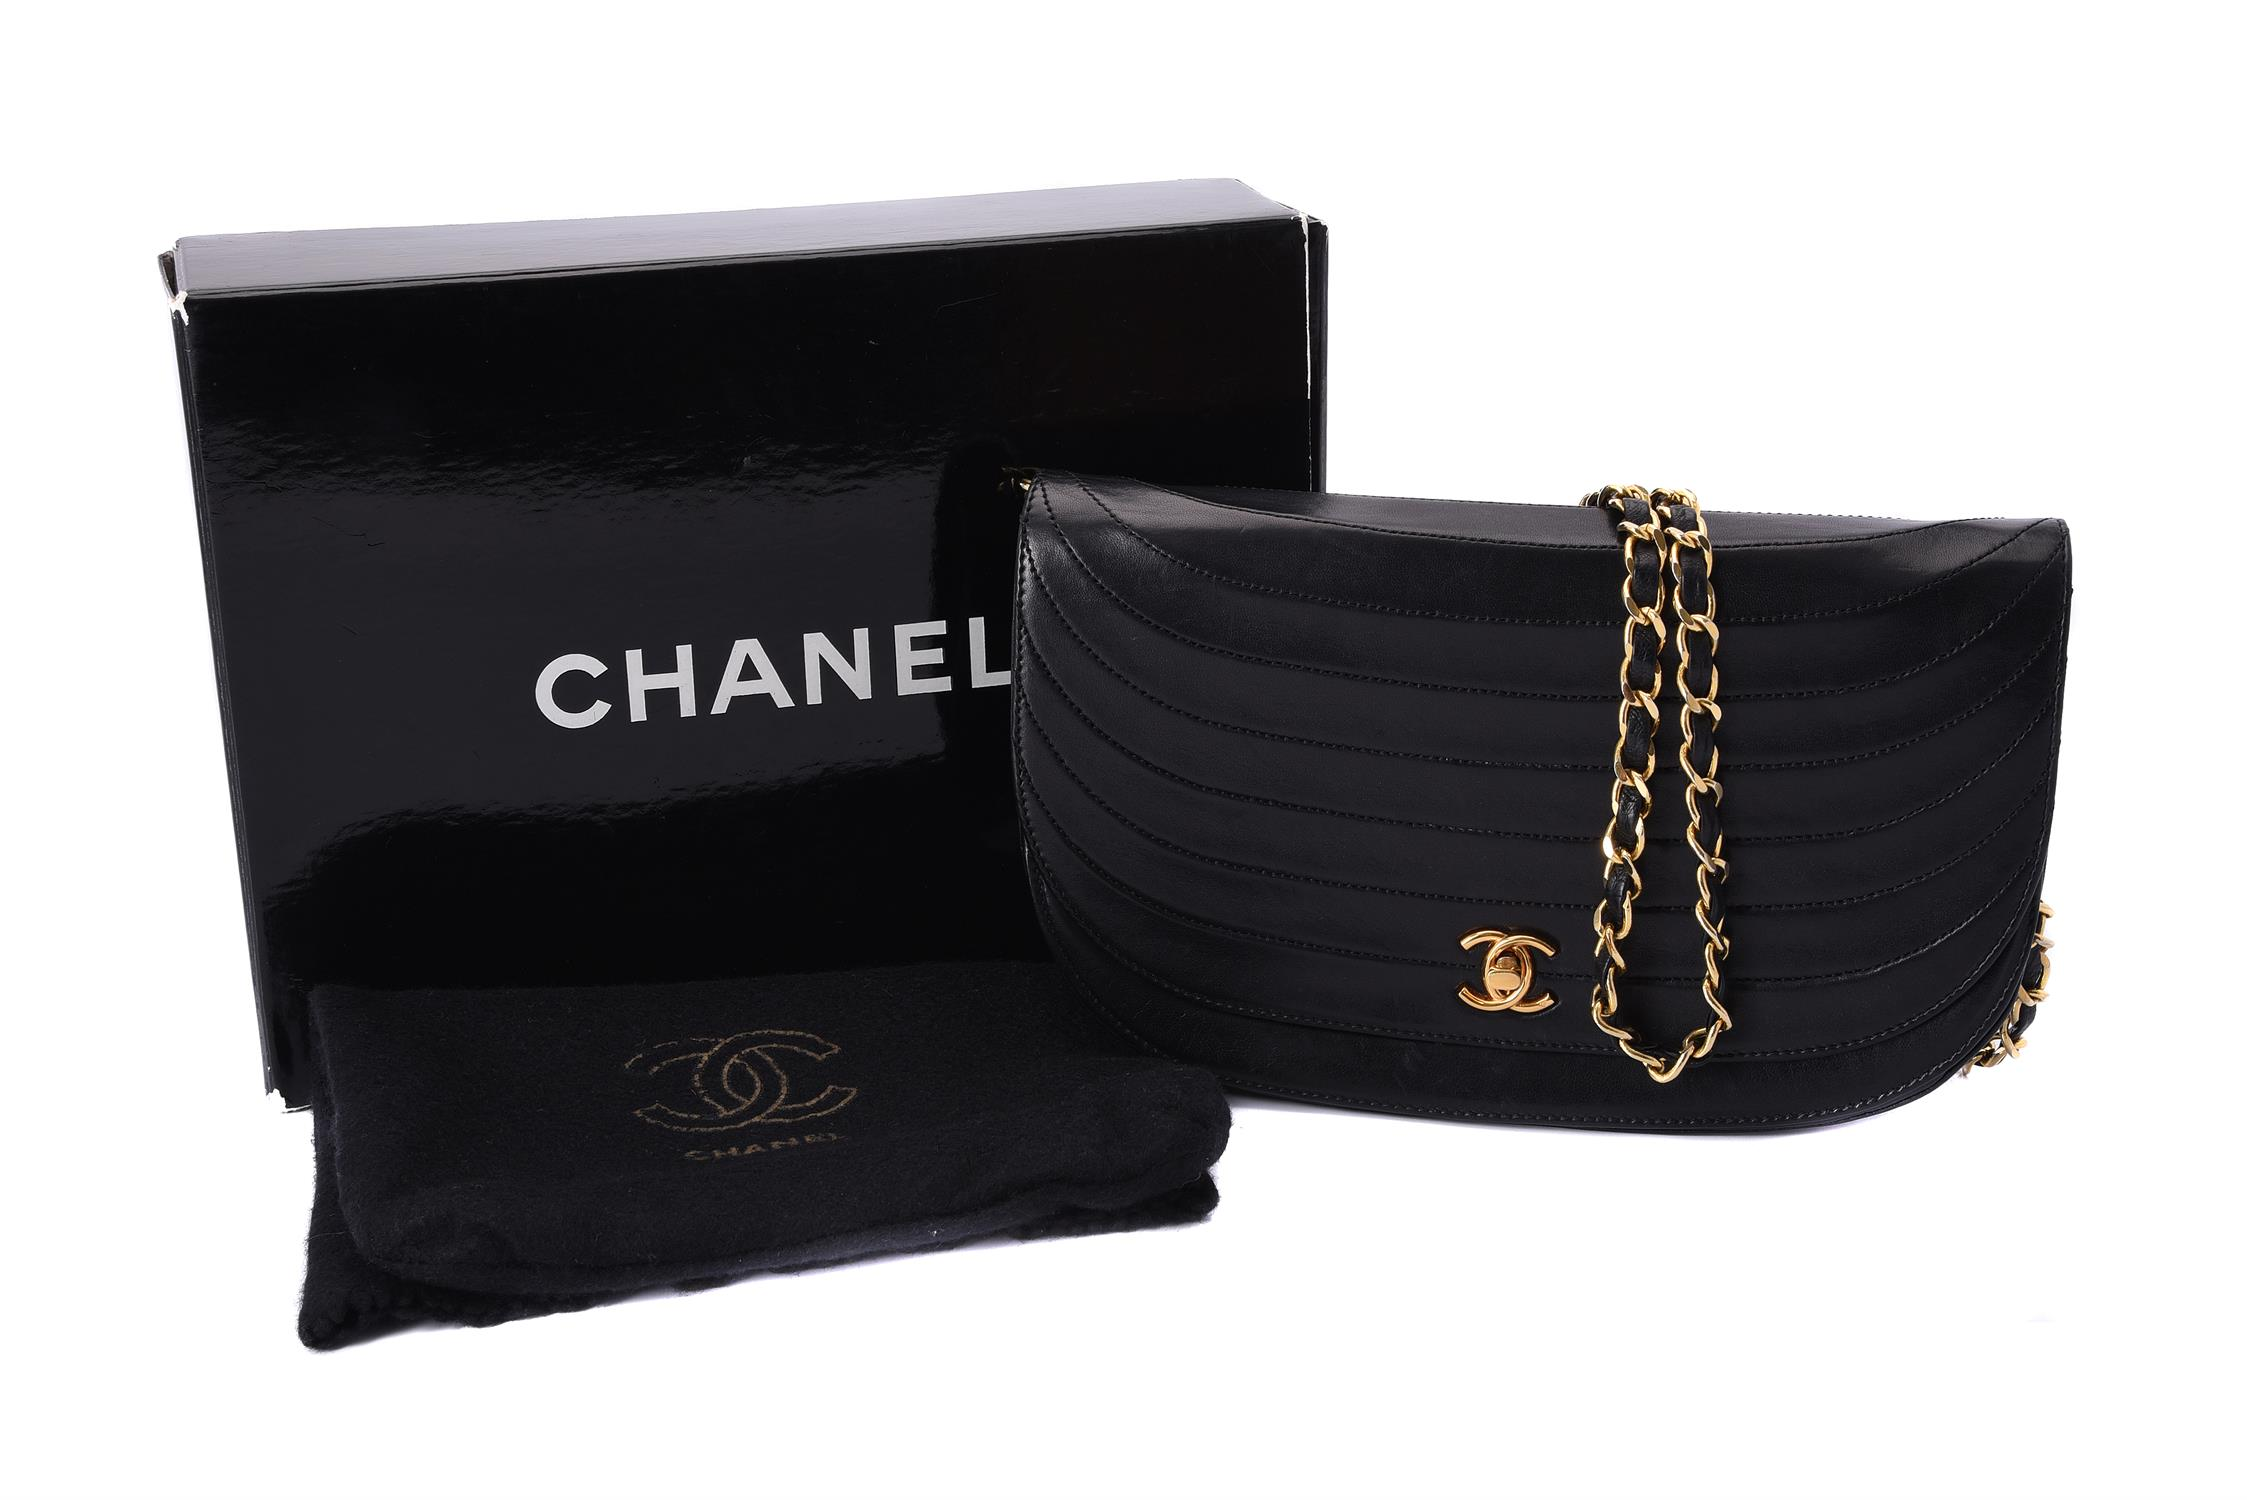 Chanel, a vintage black leather flap bag - Image 3 of 3